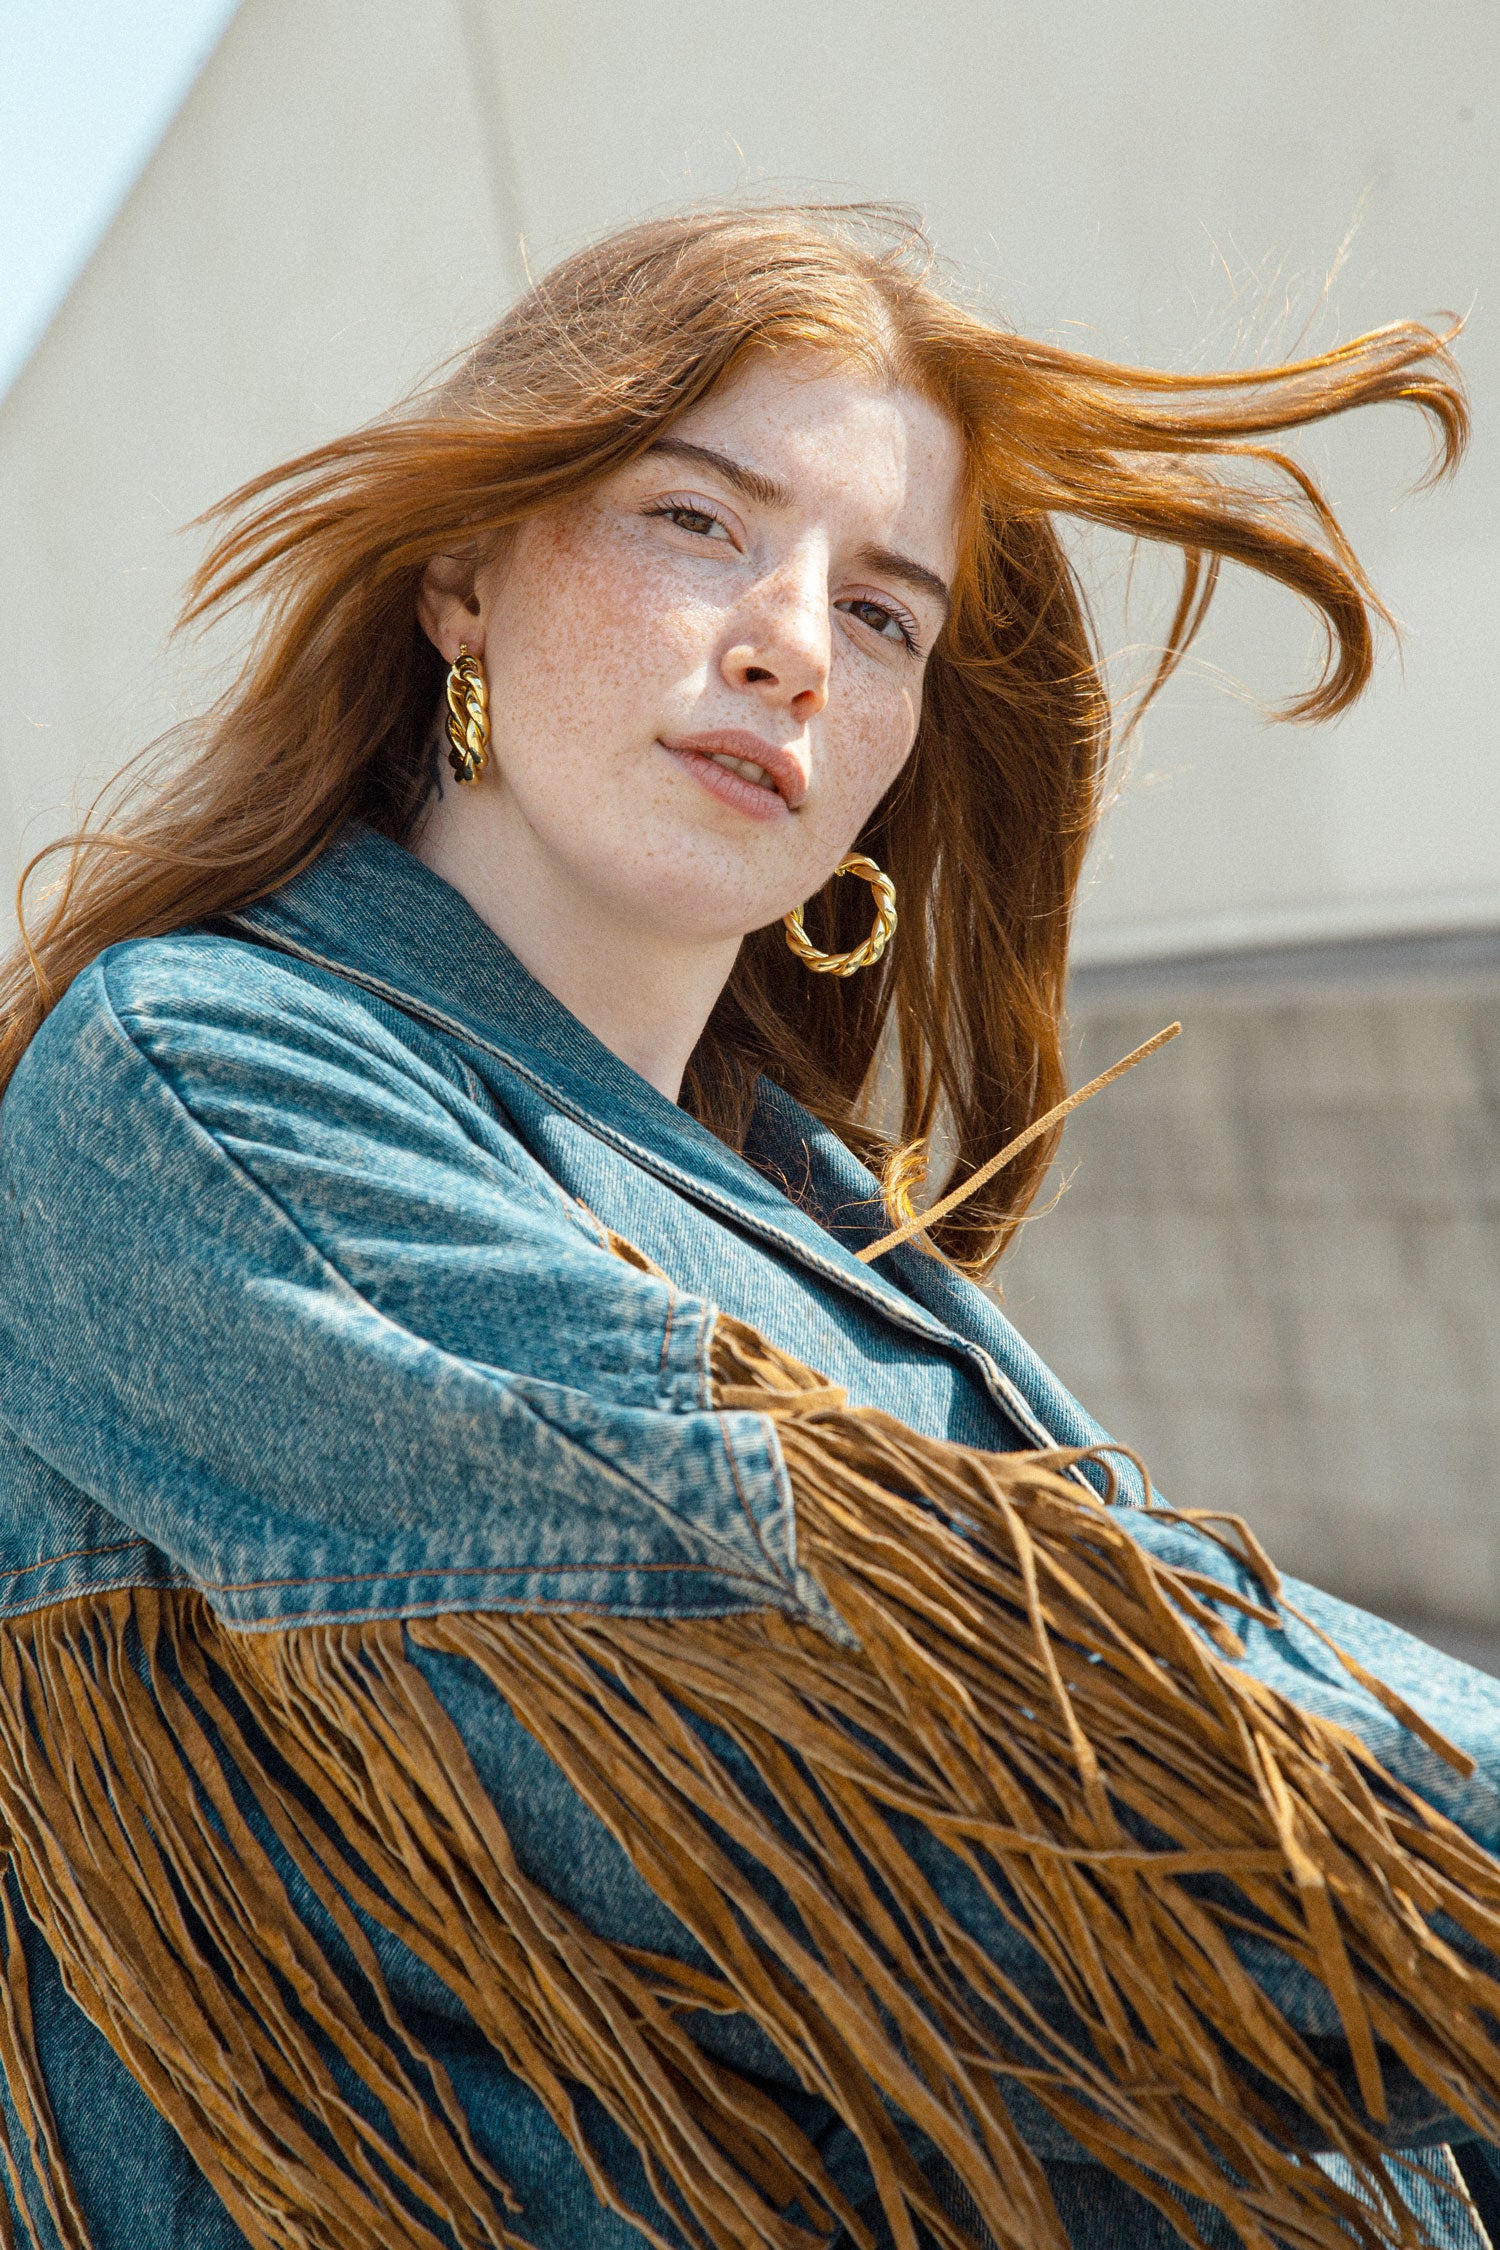 Close up of woman wearing vintage denim jacket, with suede fringe.